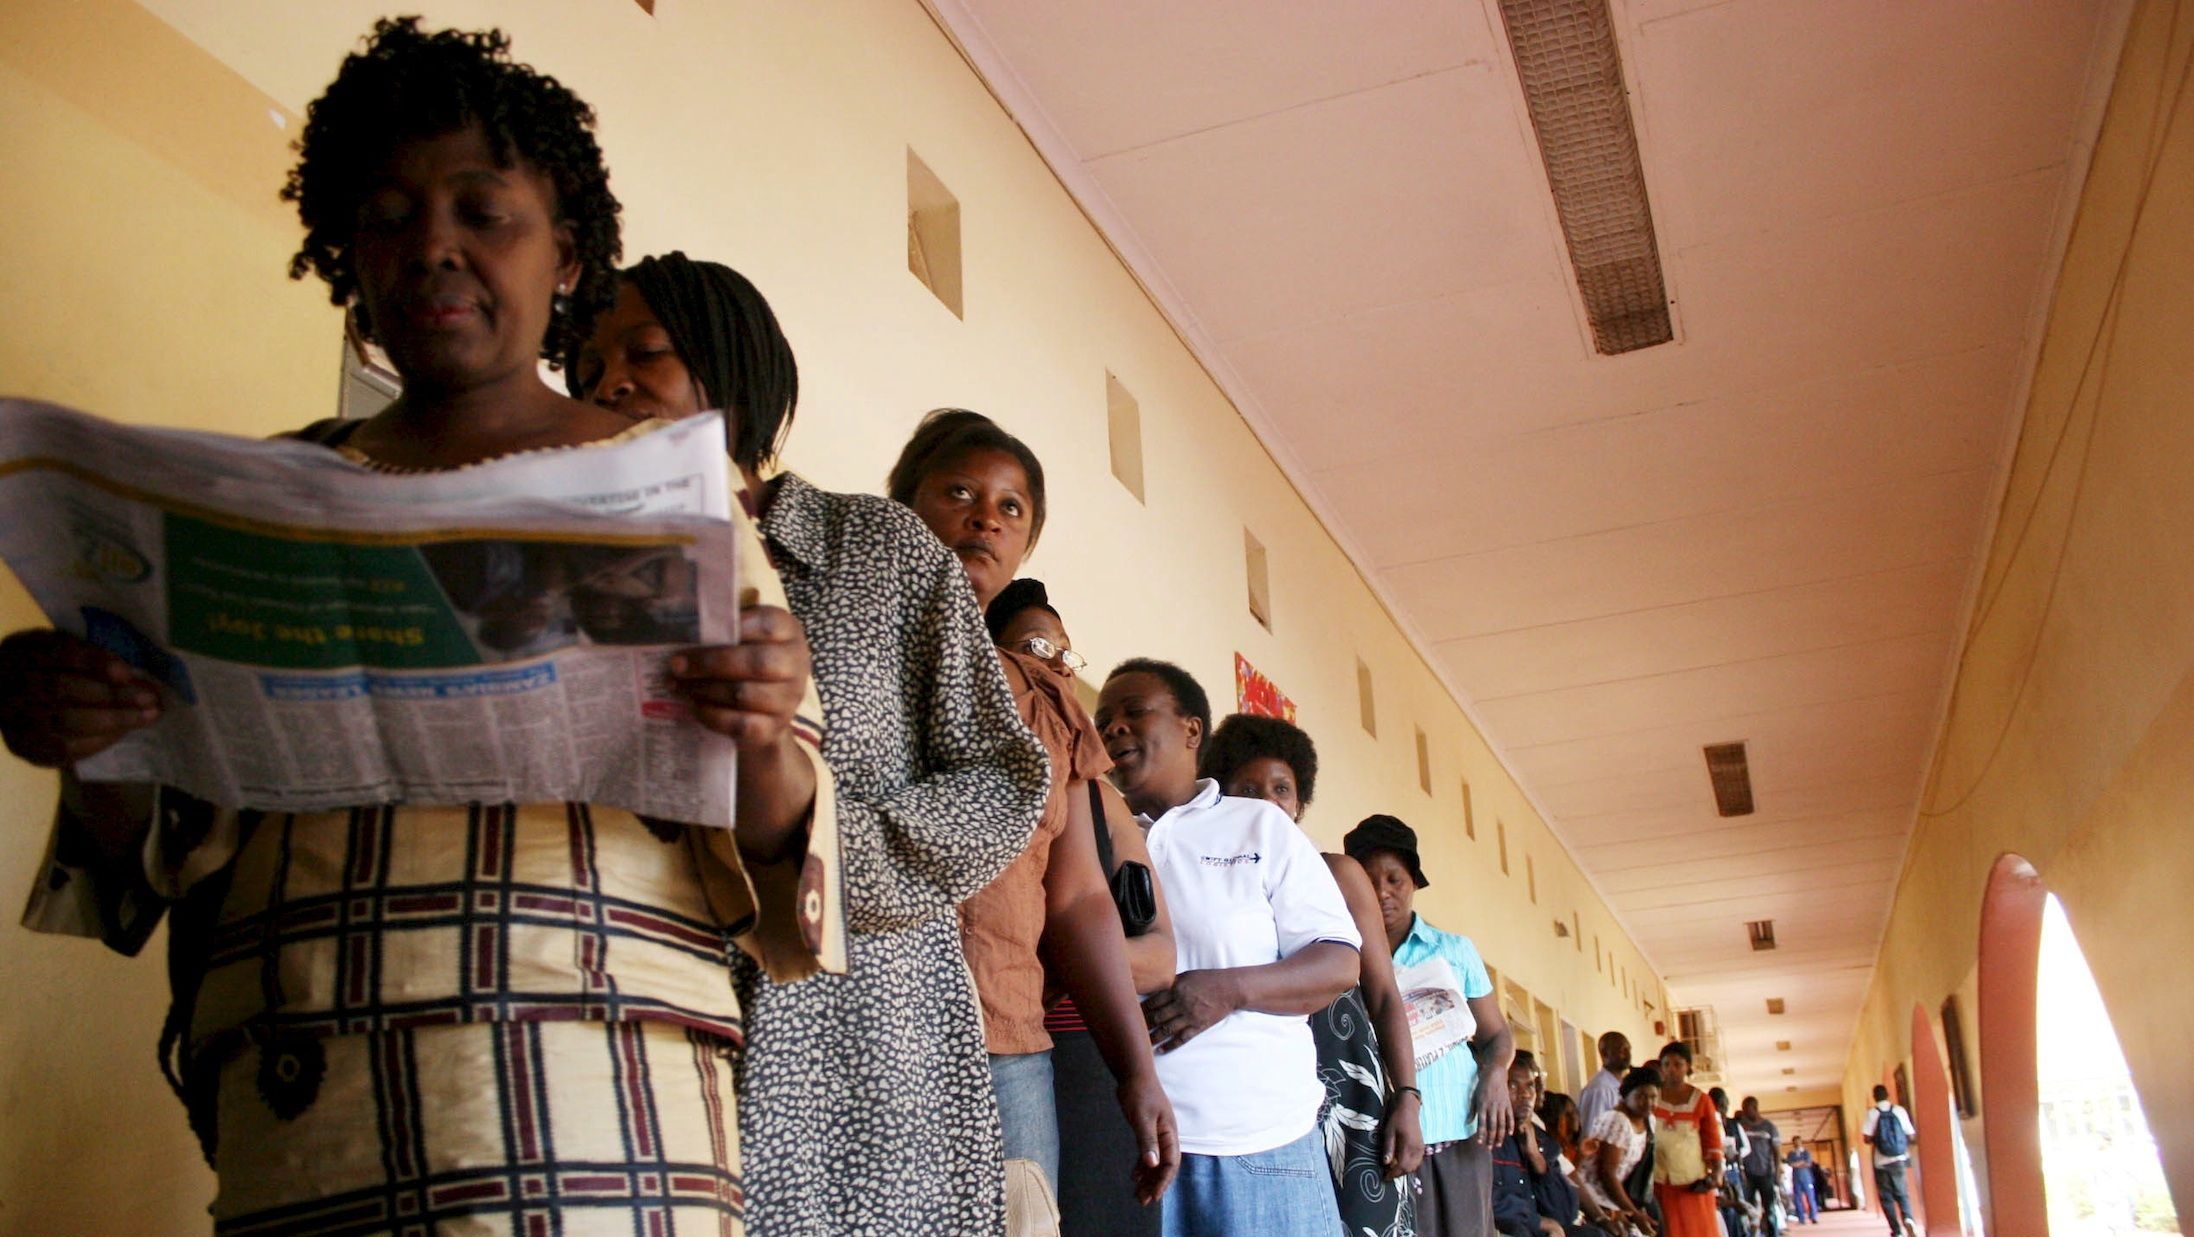 Voters wait their turn in Zambia.